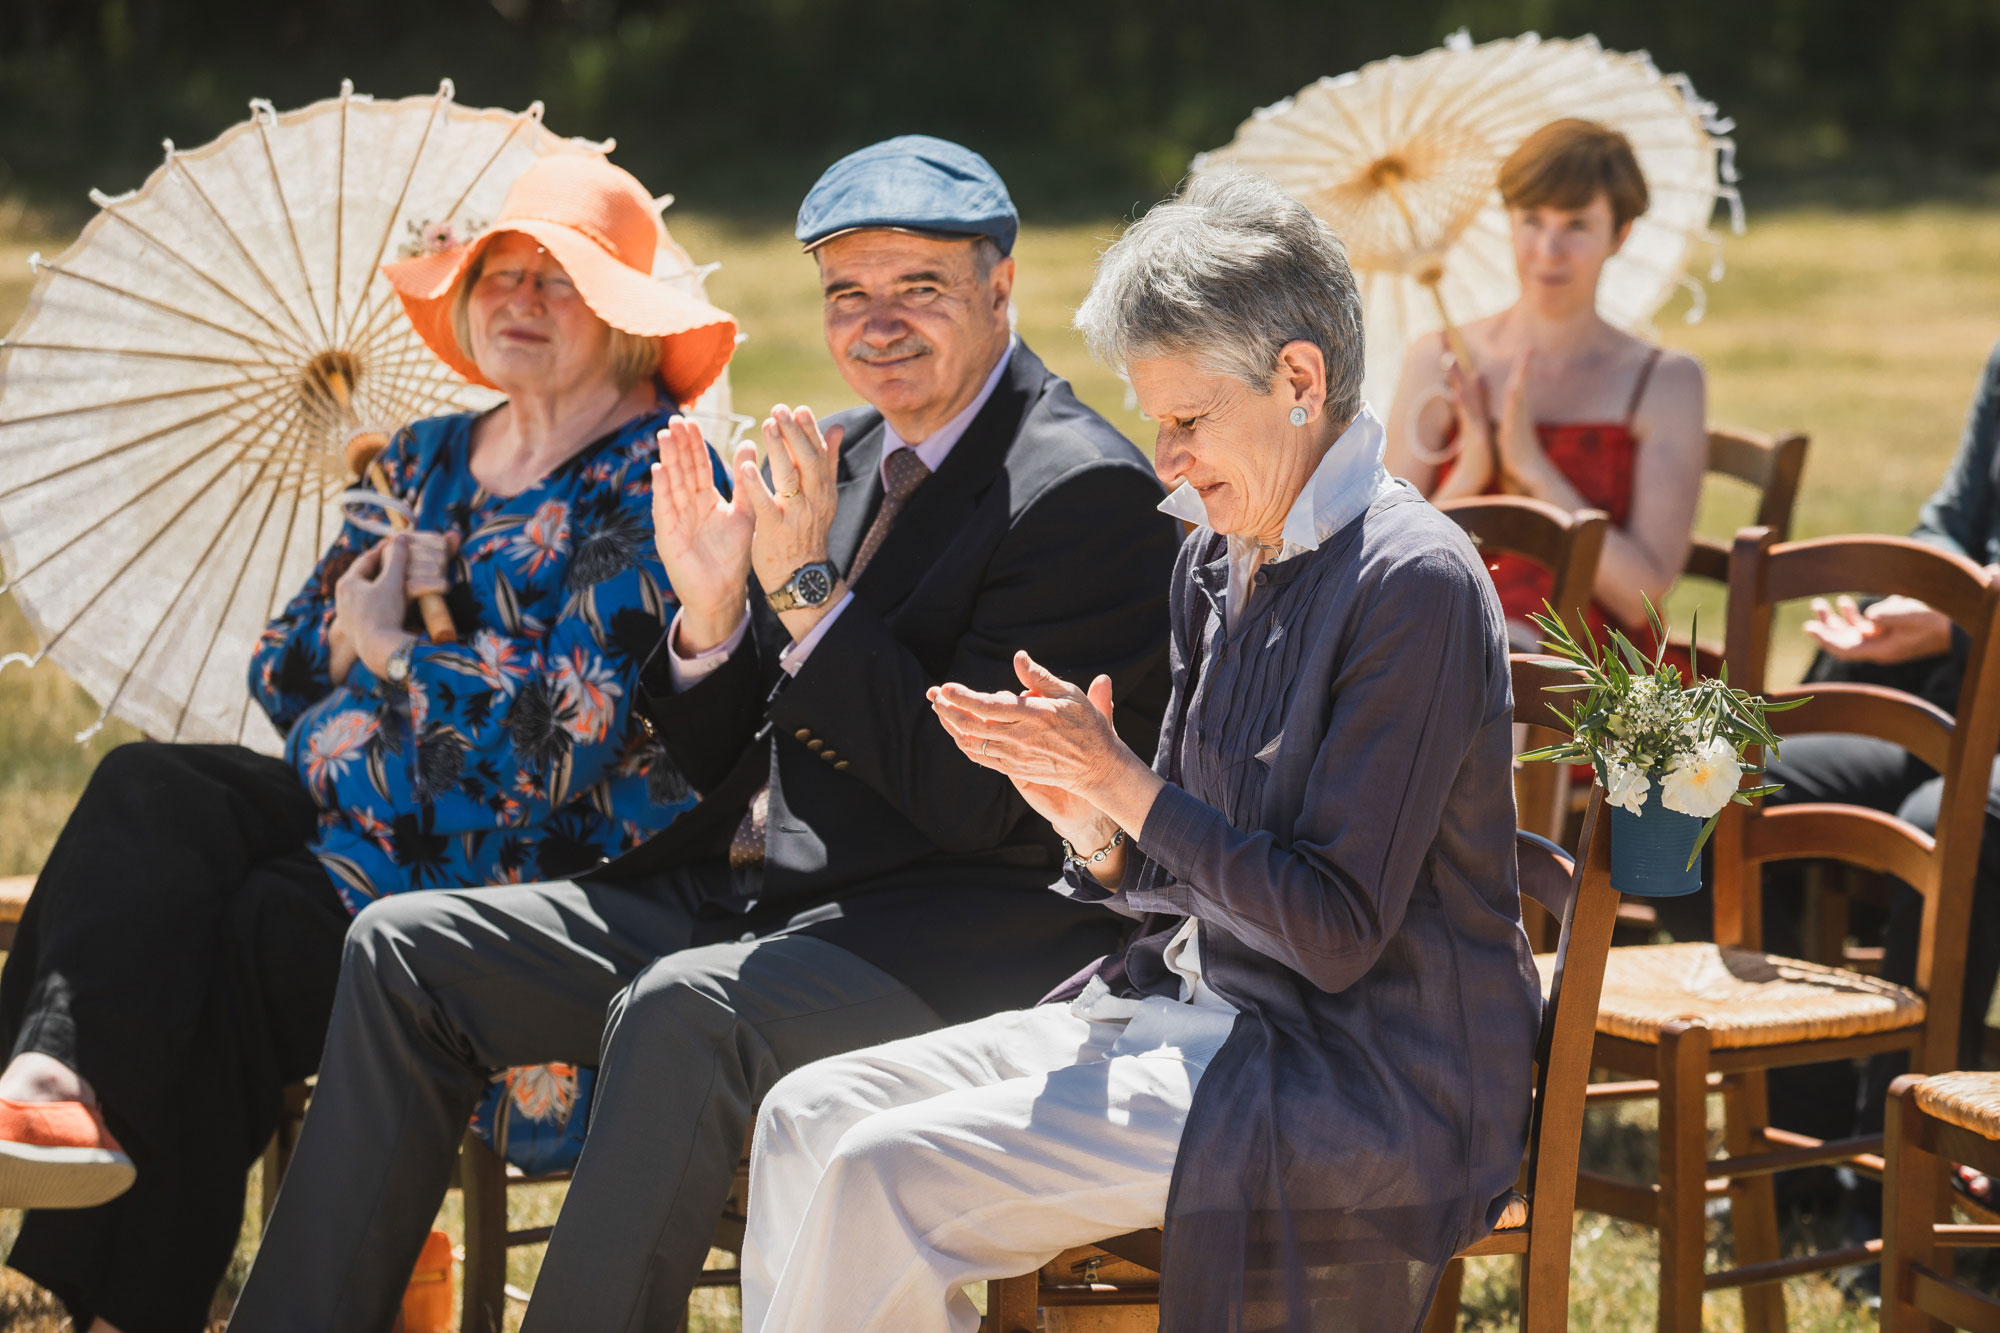 christchurch wedding parents of the groom clapping